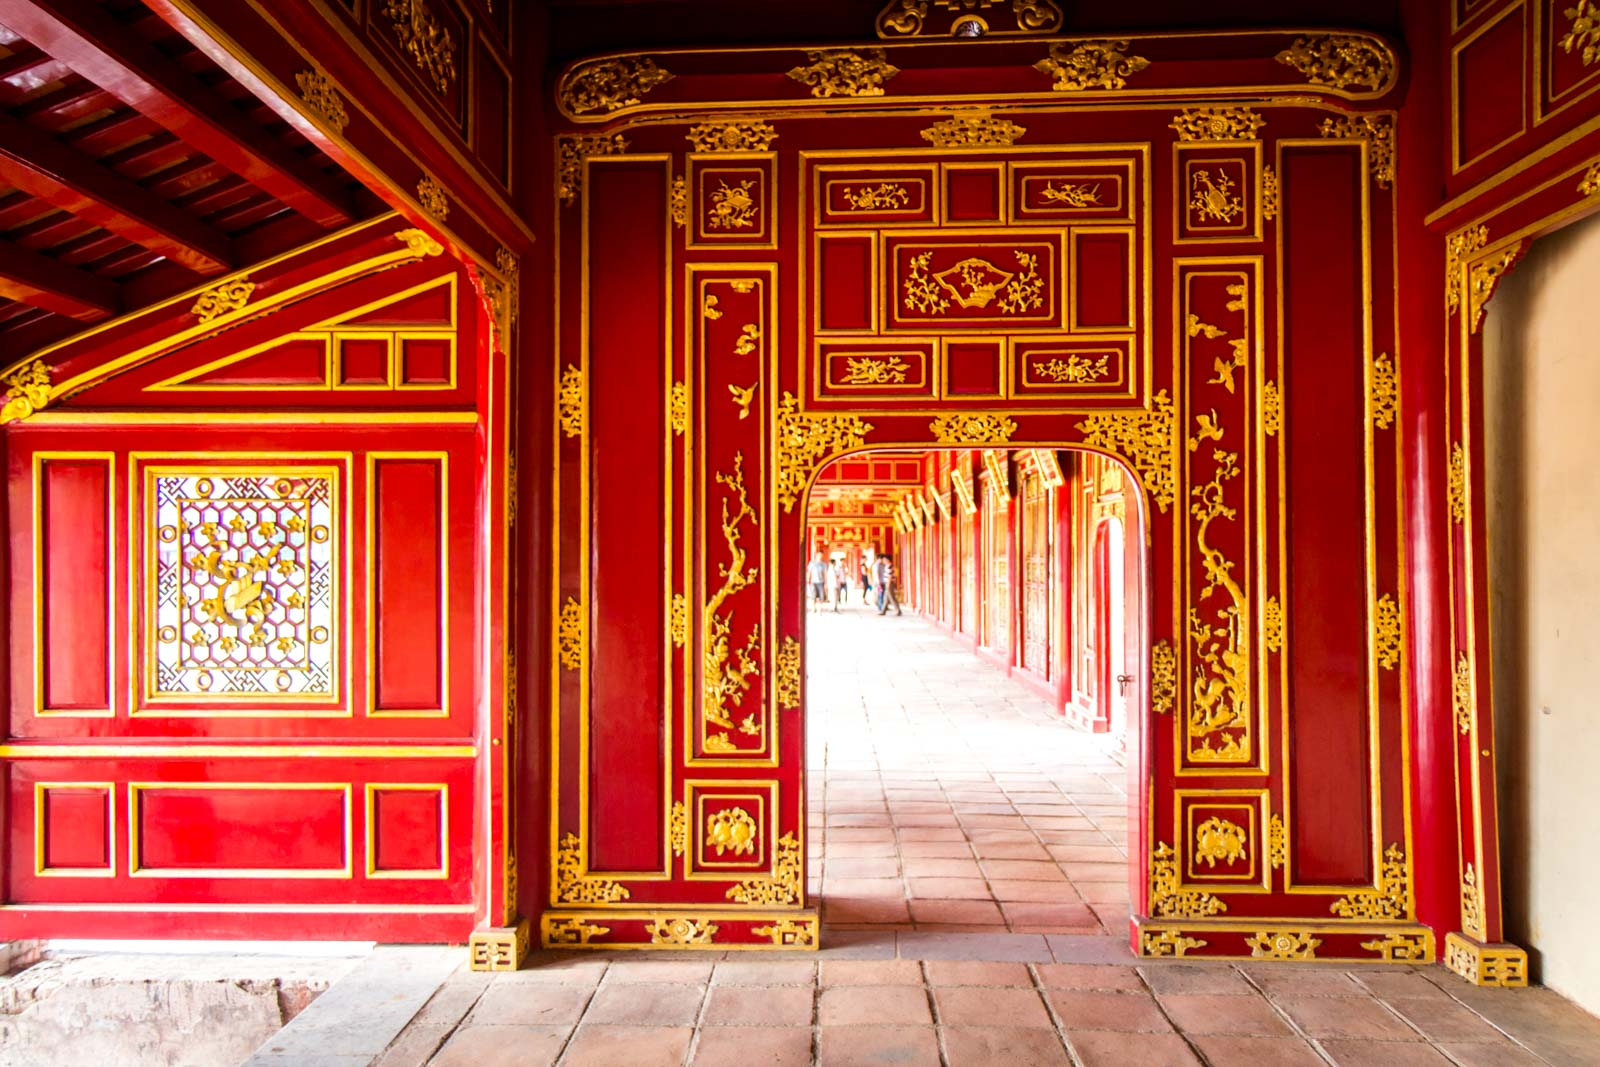 Imperial City of Hue, Vietnam